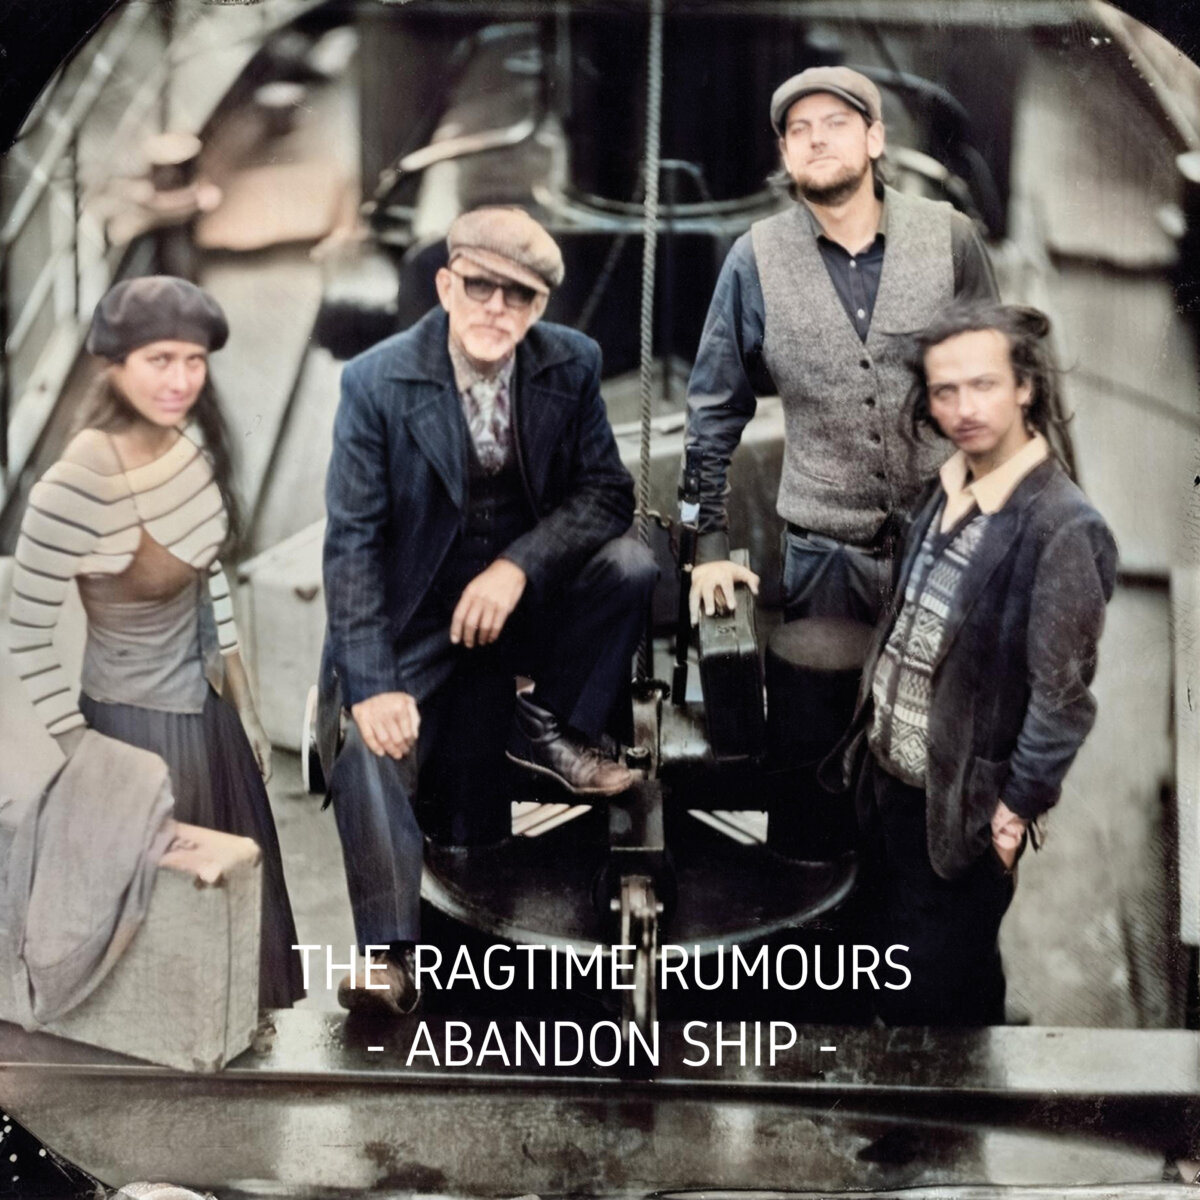 The Ragtime Rumours - Abandon Ship